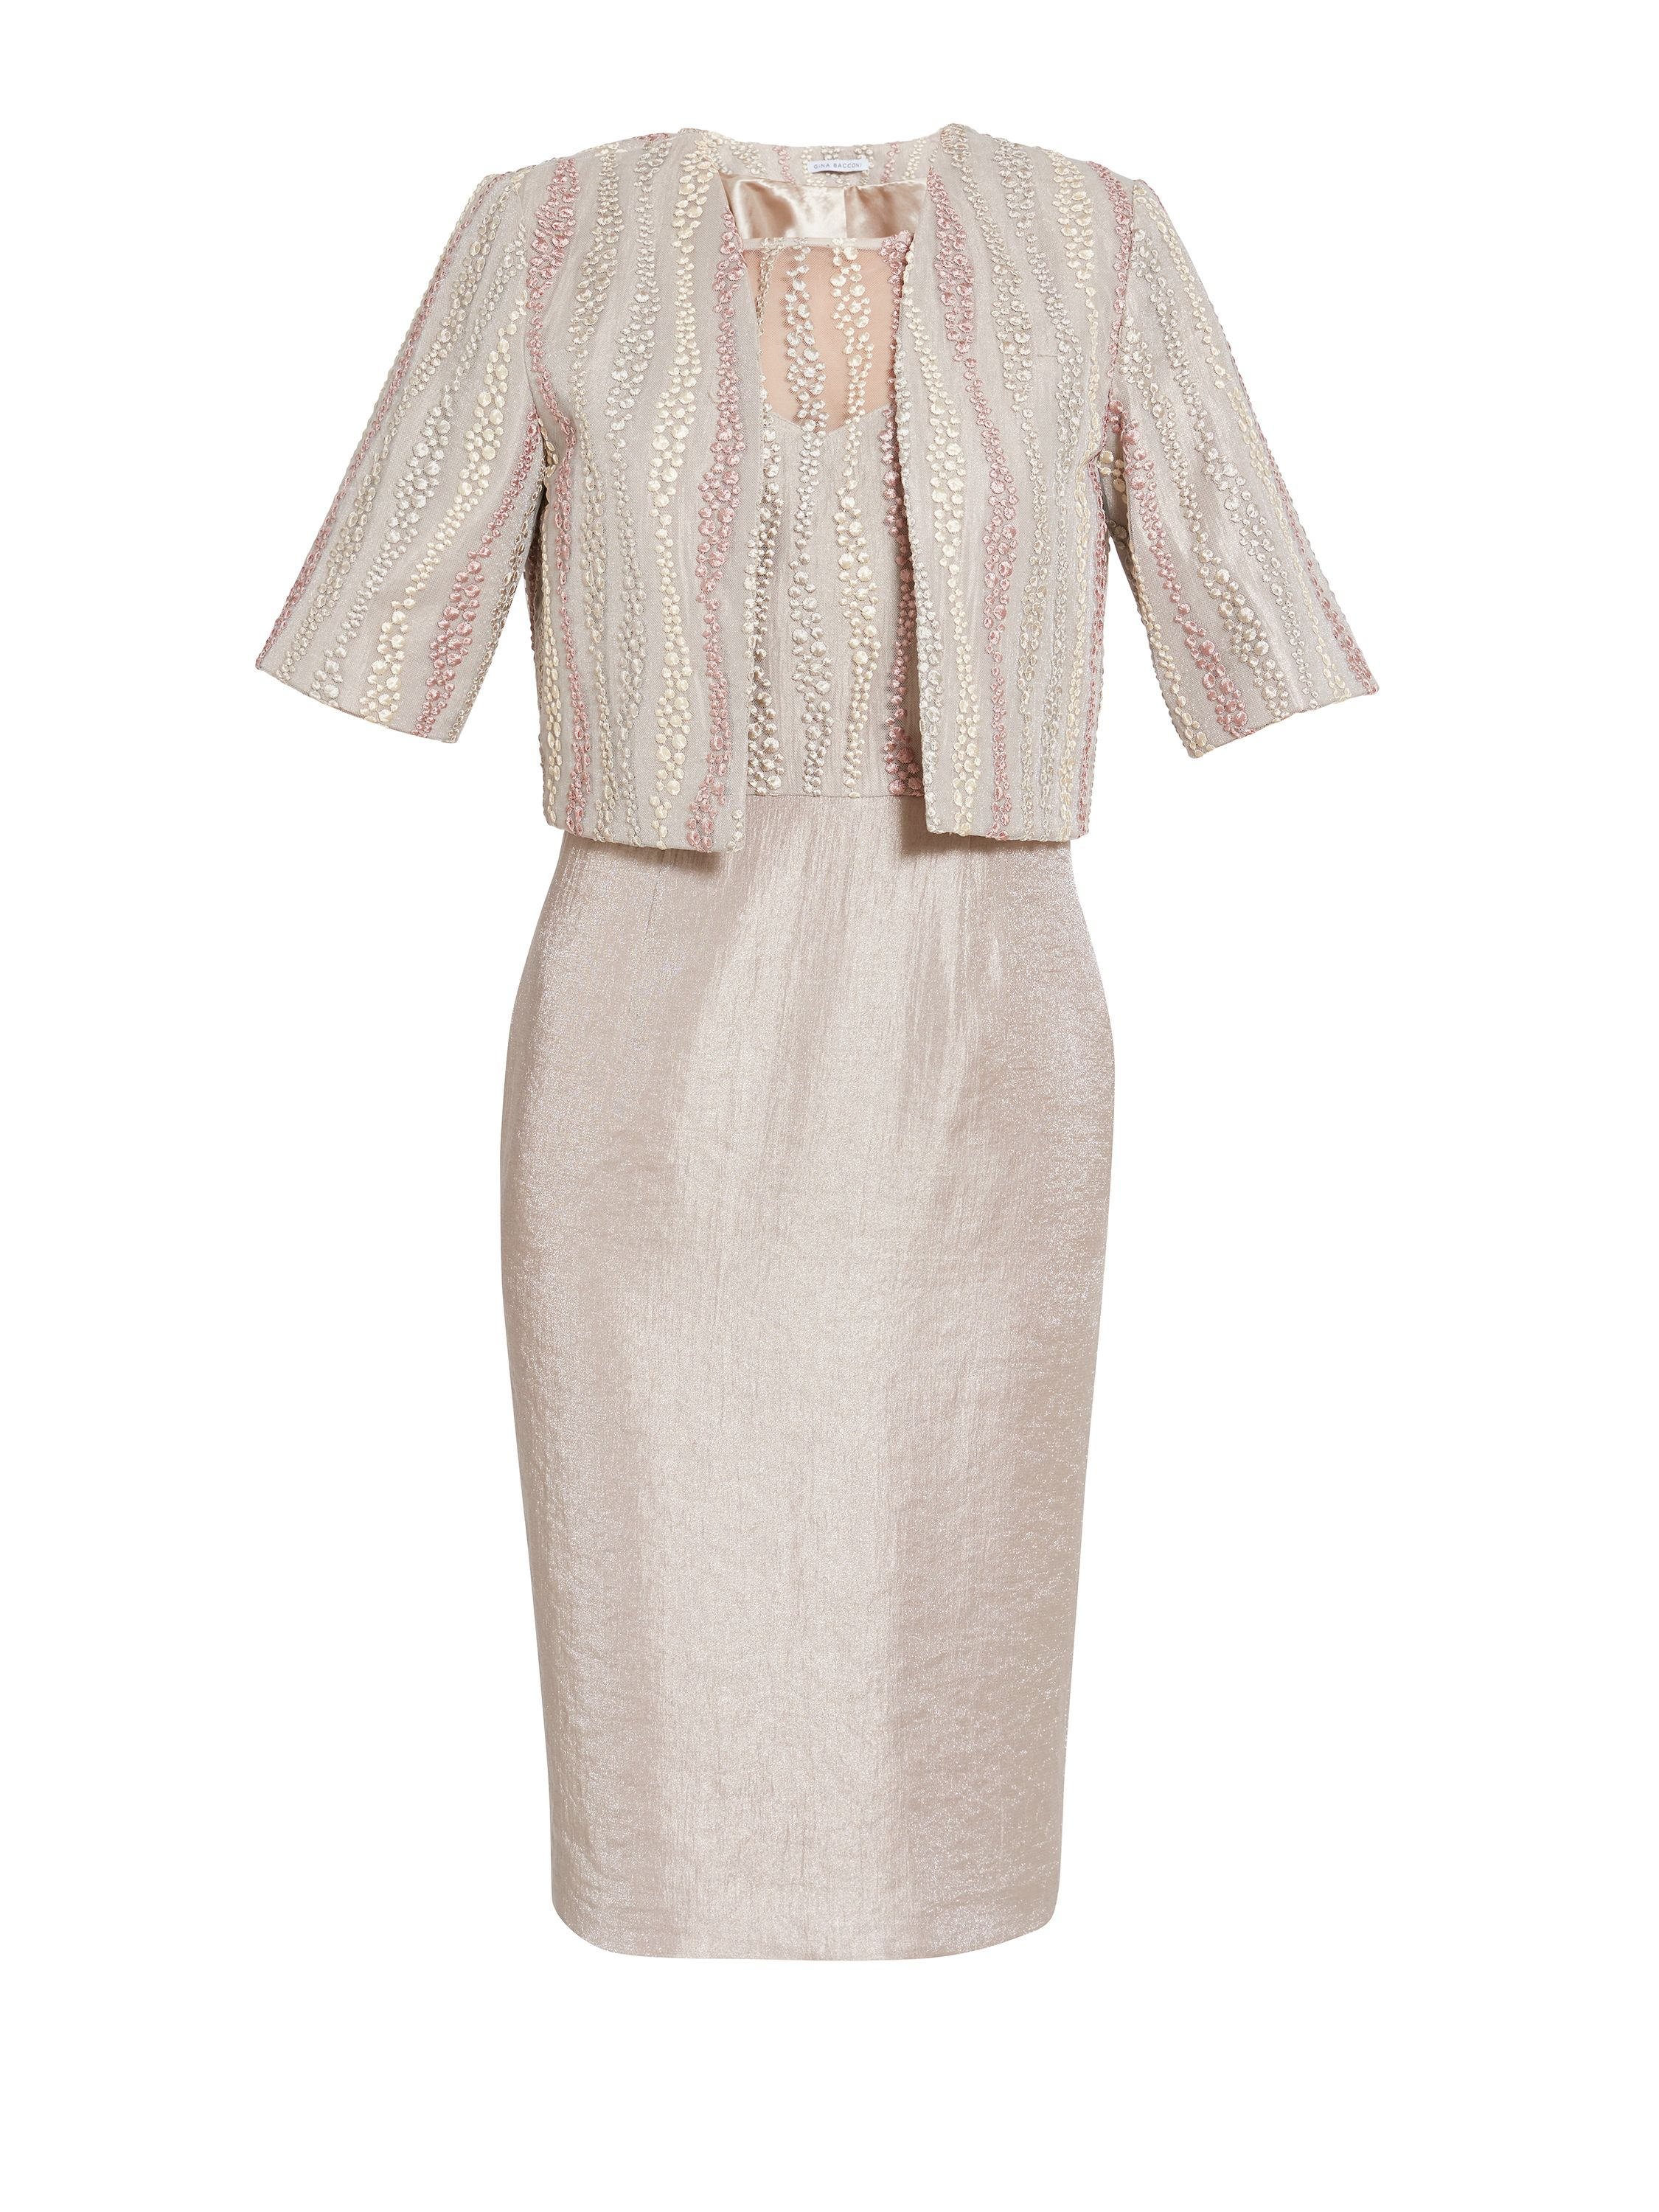 Gina Bacconi Embroidered mesh dress and jacket, Cream